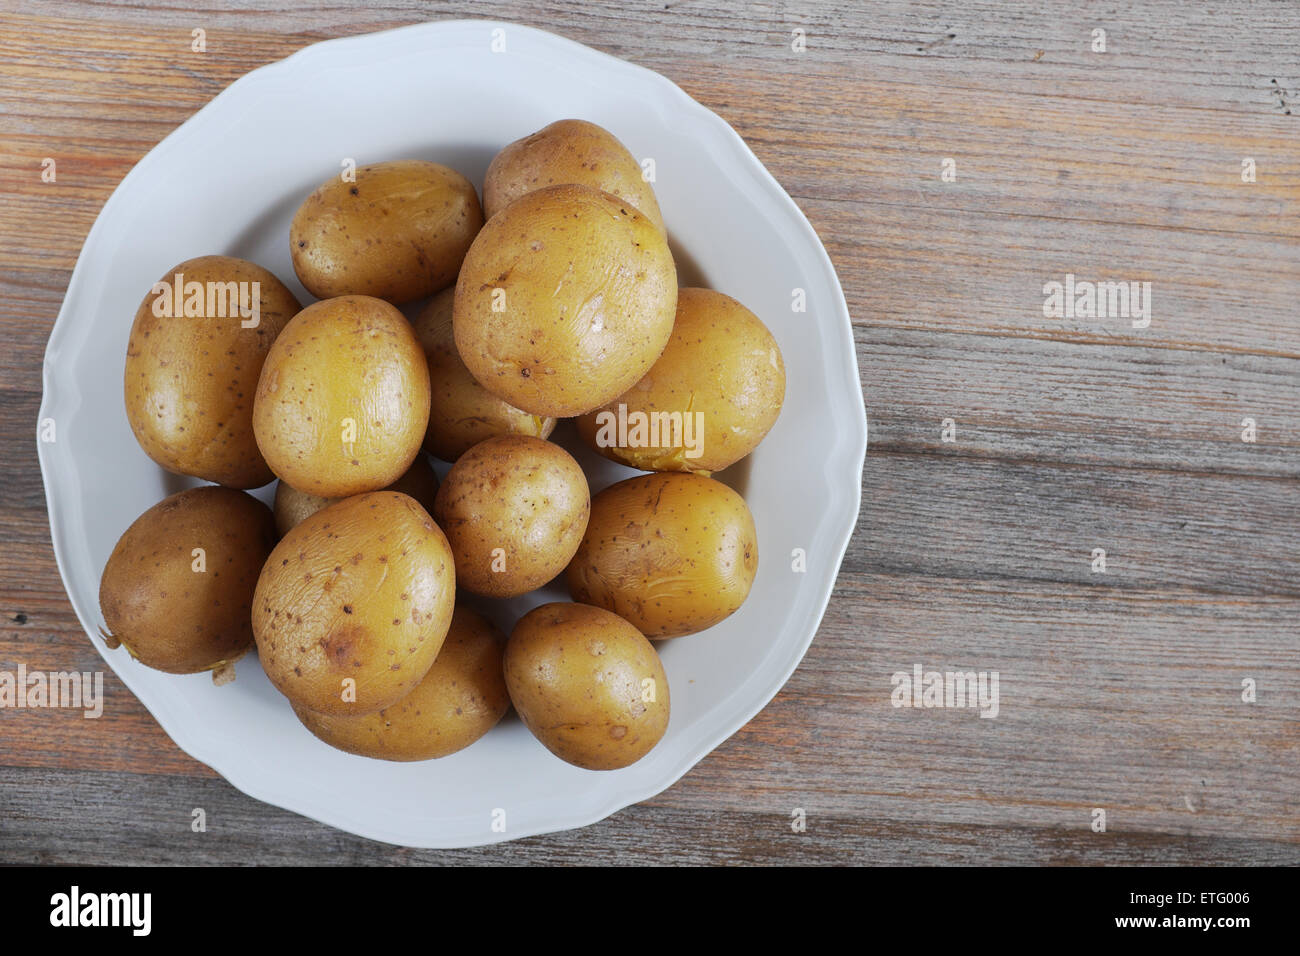 boiled potatoes in their skins on a plate - Stock Image